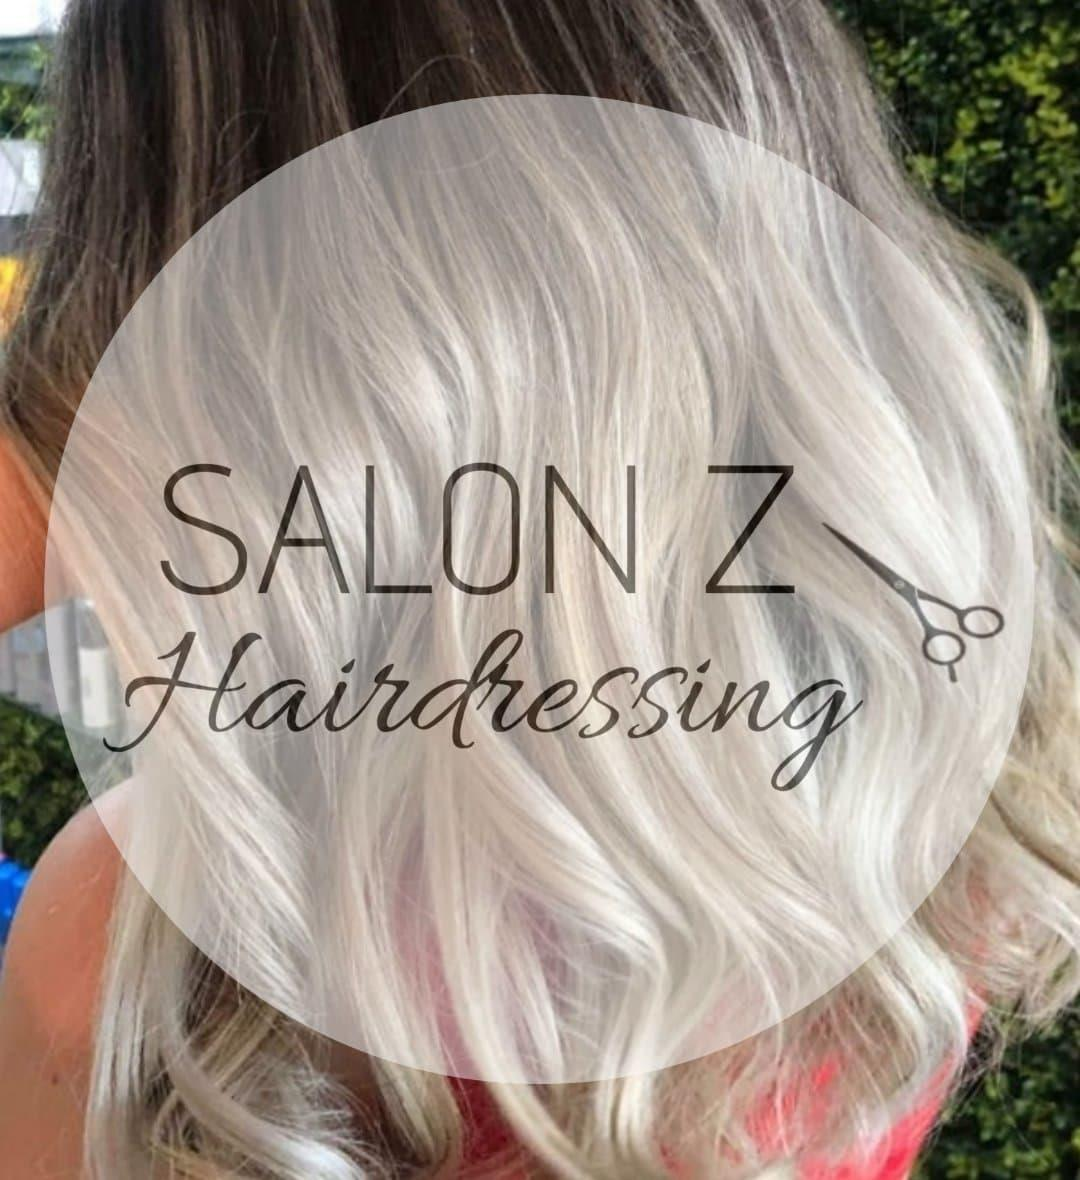 Salon Z Hairdressing